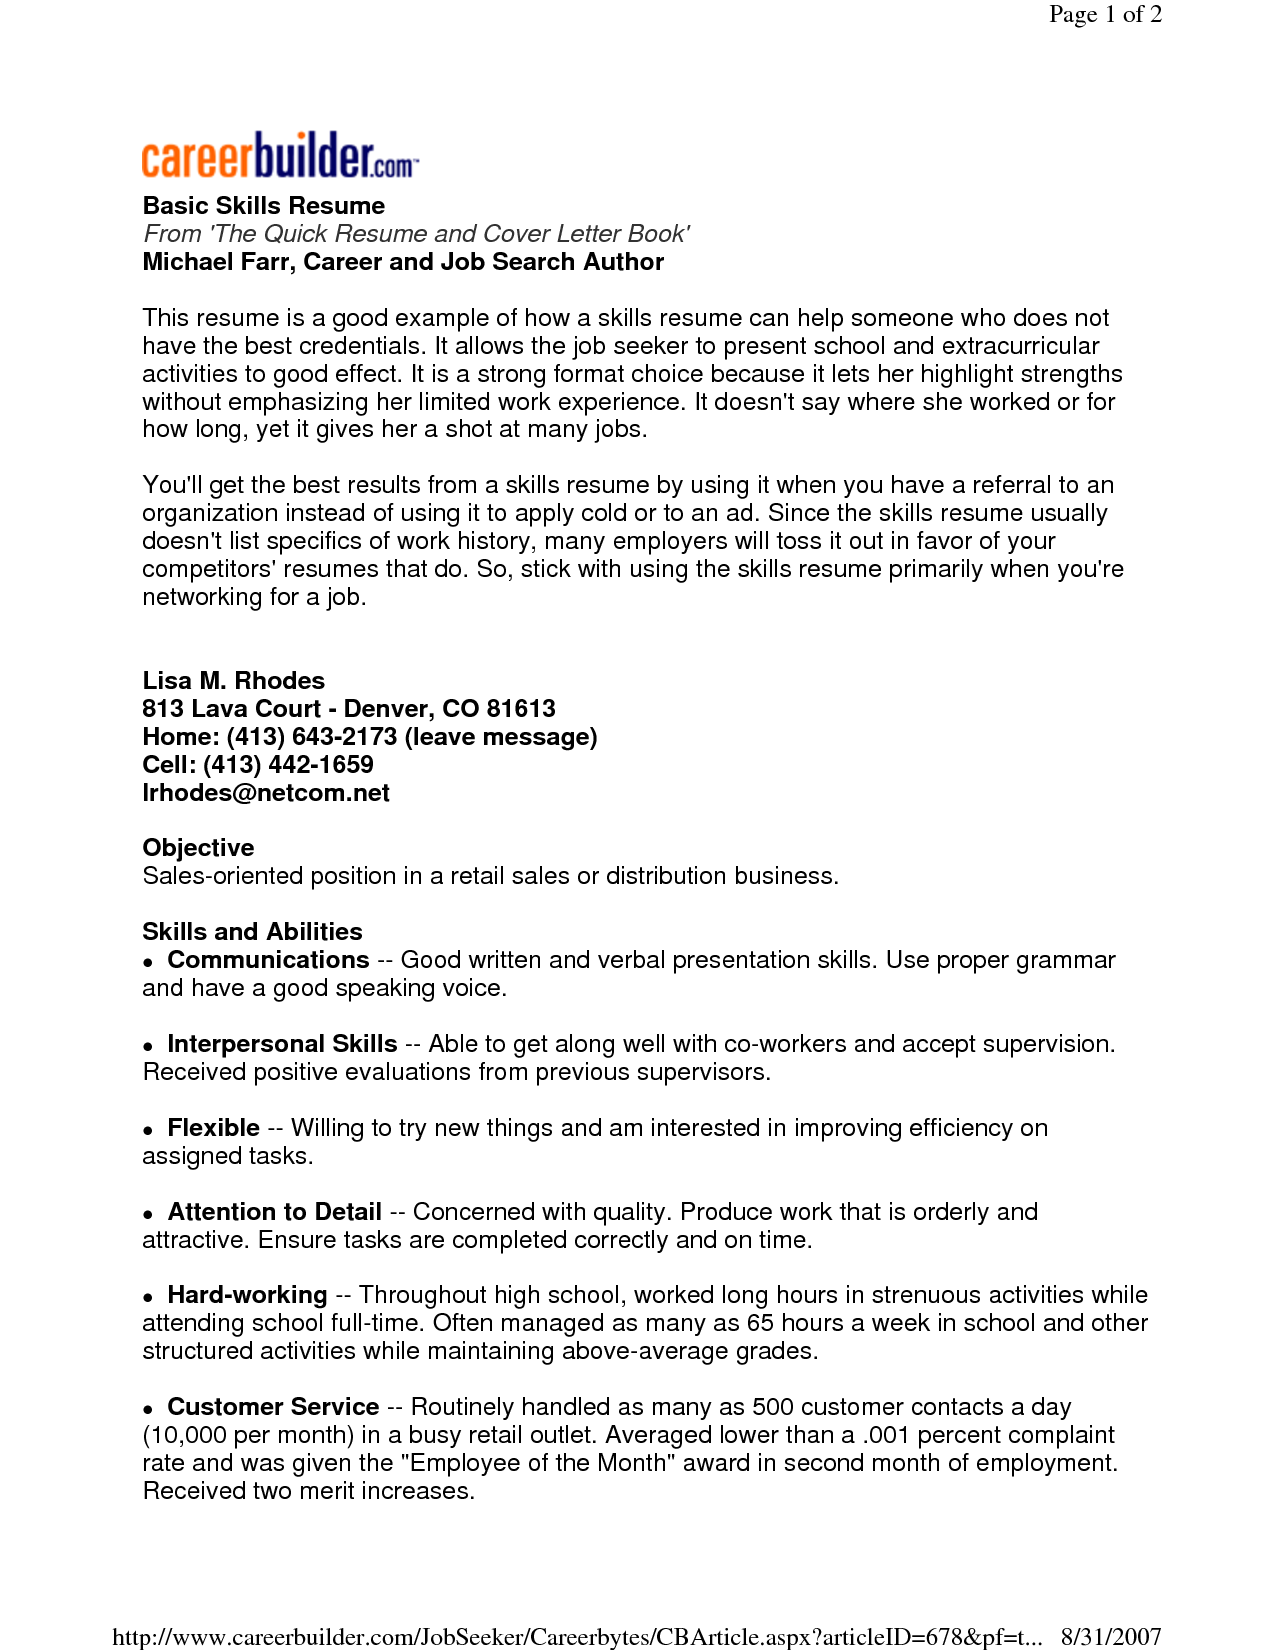 Sample Computer Skills For Resume Find Here The Sample Resume That Best Fits Your Profile In